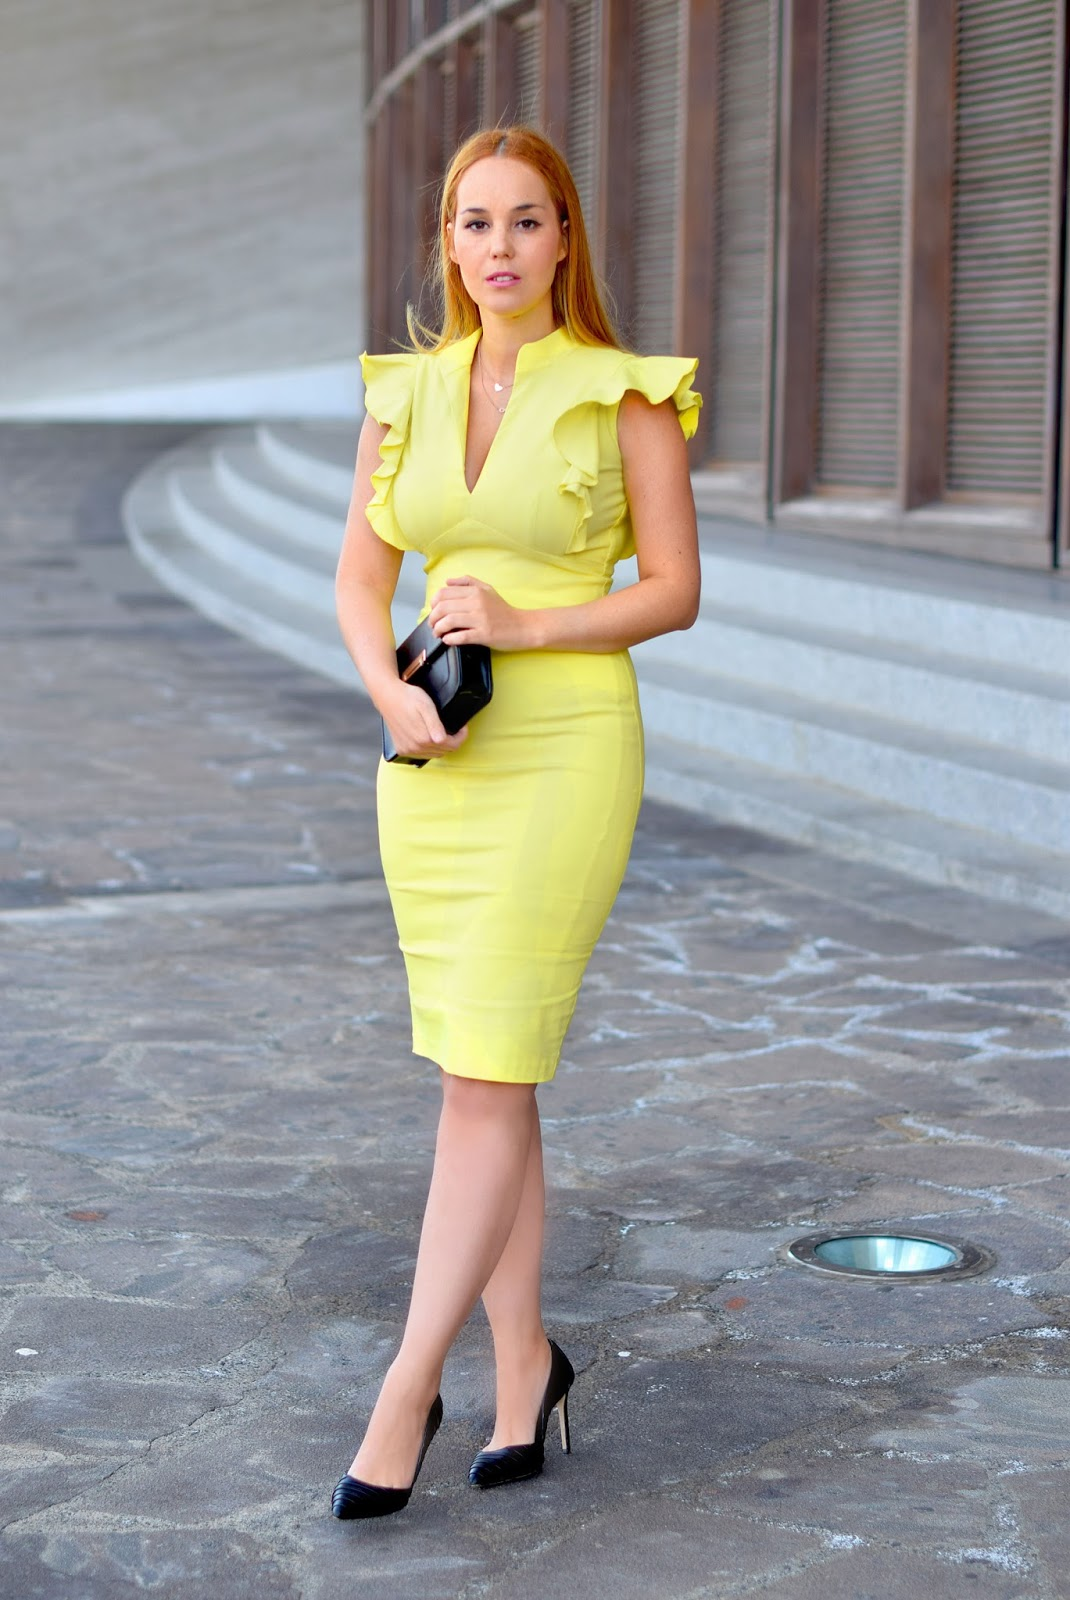 nery hdez, perfect guest, hybrid, zara shoes, lime dress, invitada perfecta